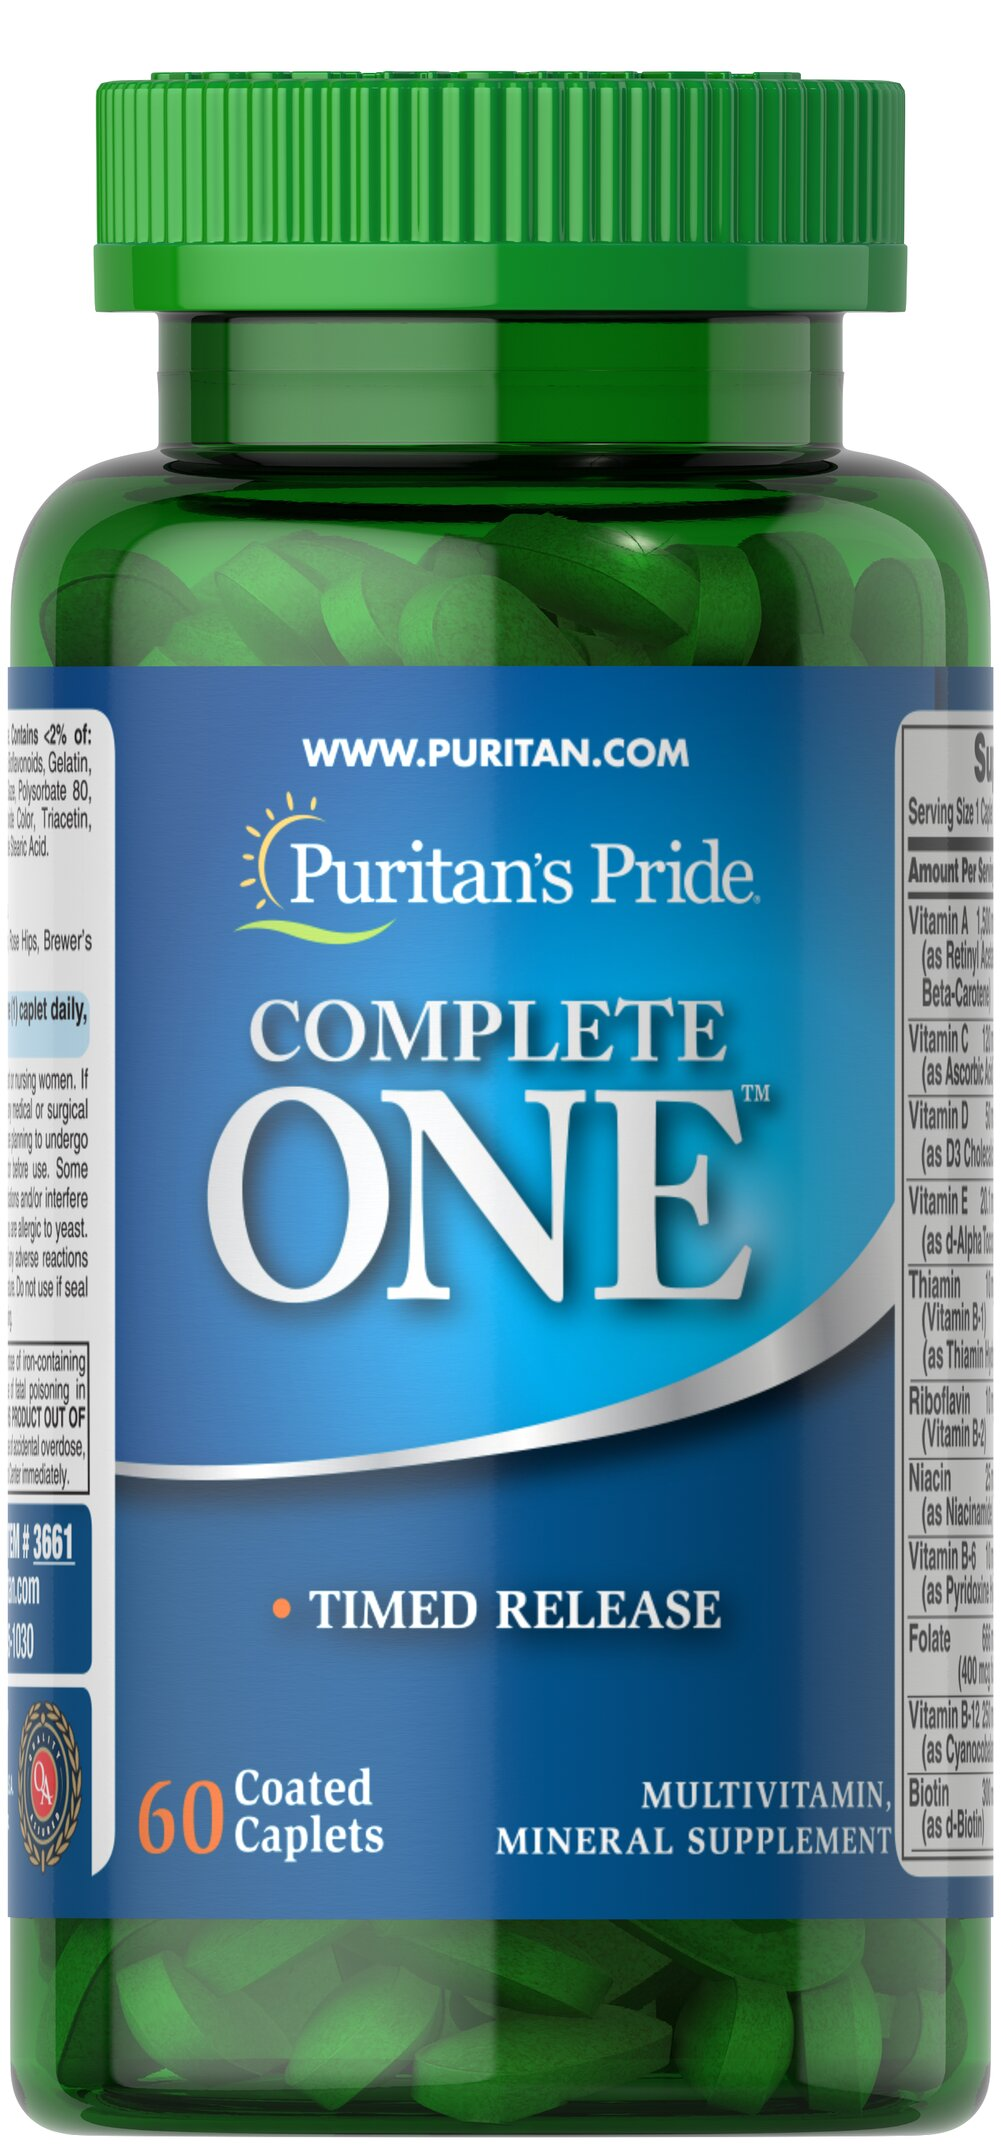 Puritan's Pride One™ Multivitamins Timed Release  60 Caplets  $15.99